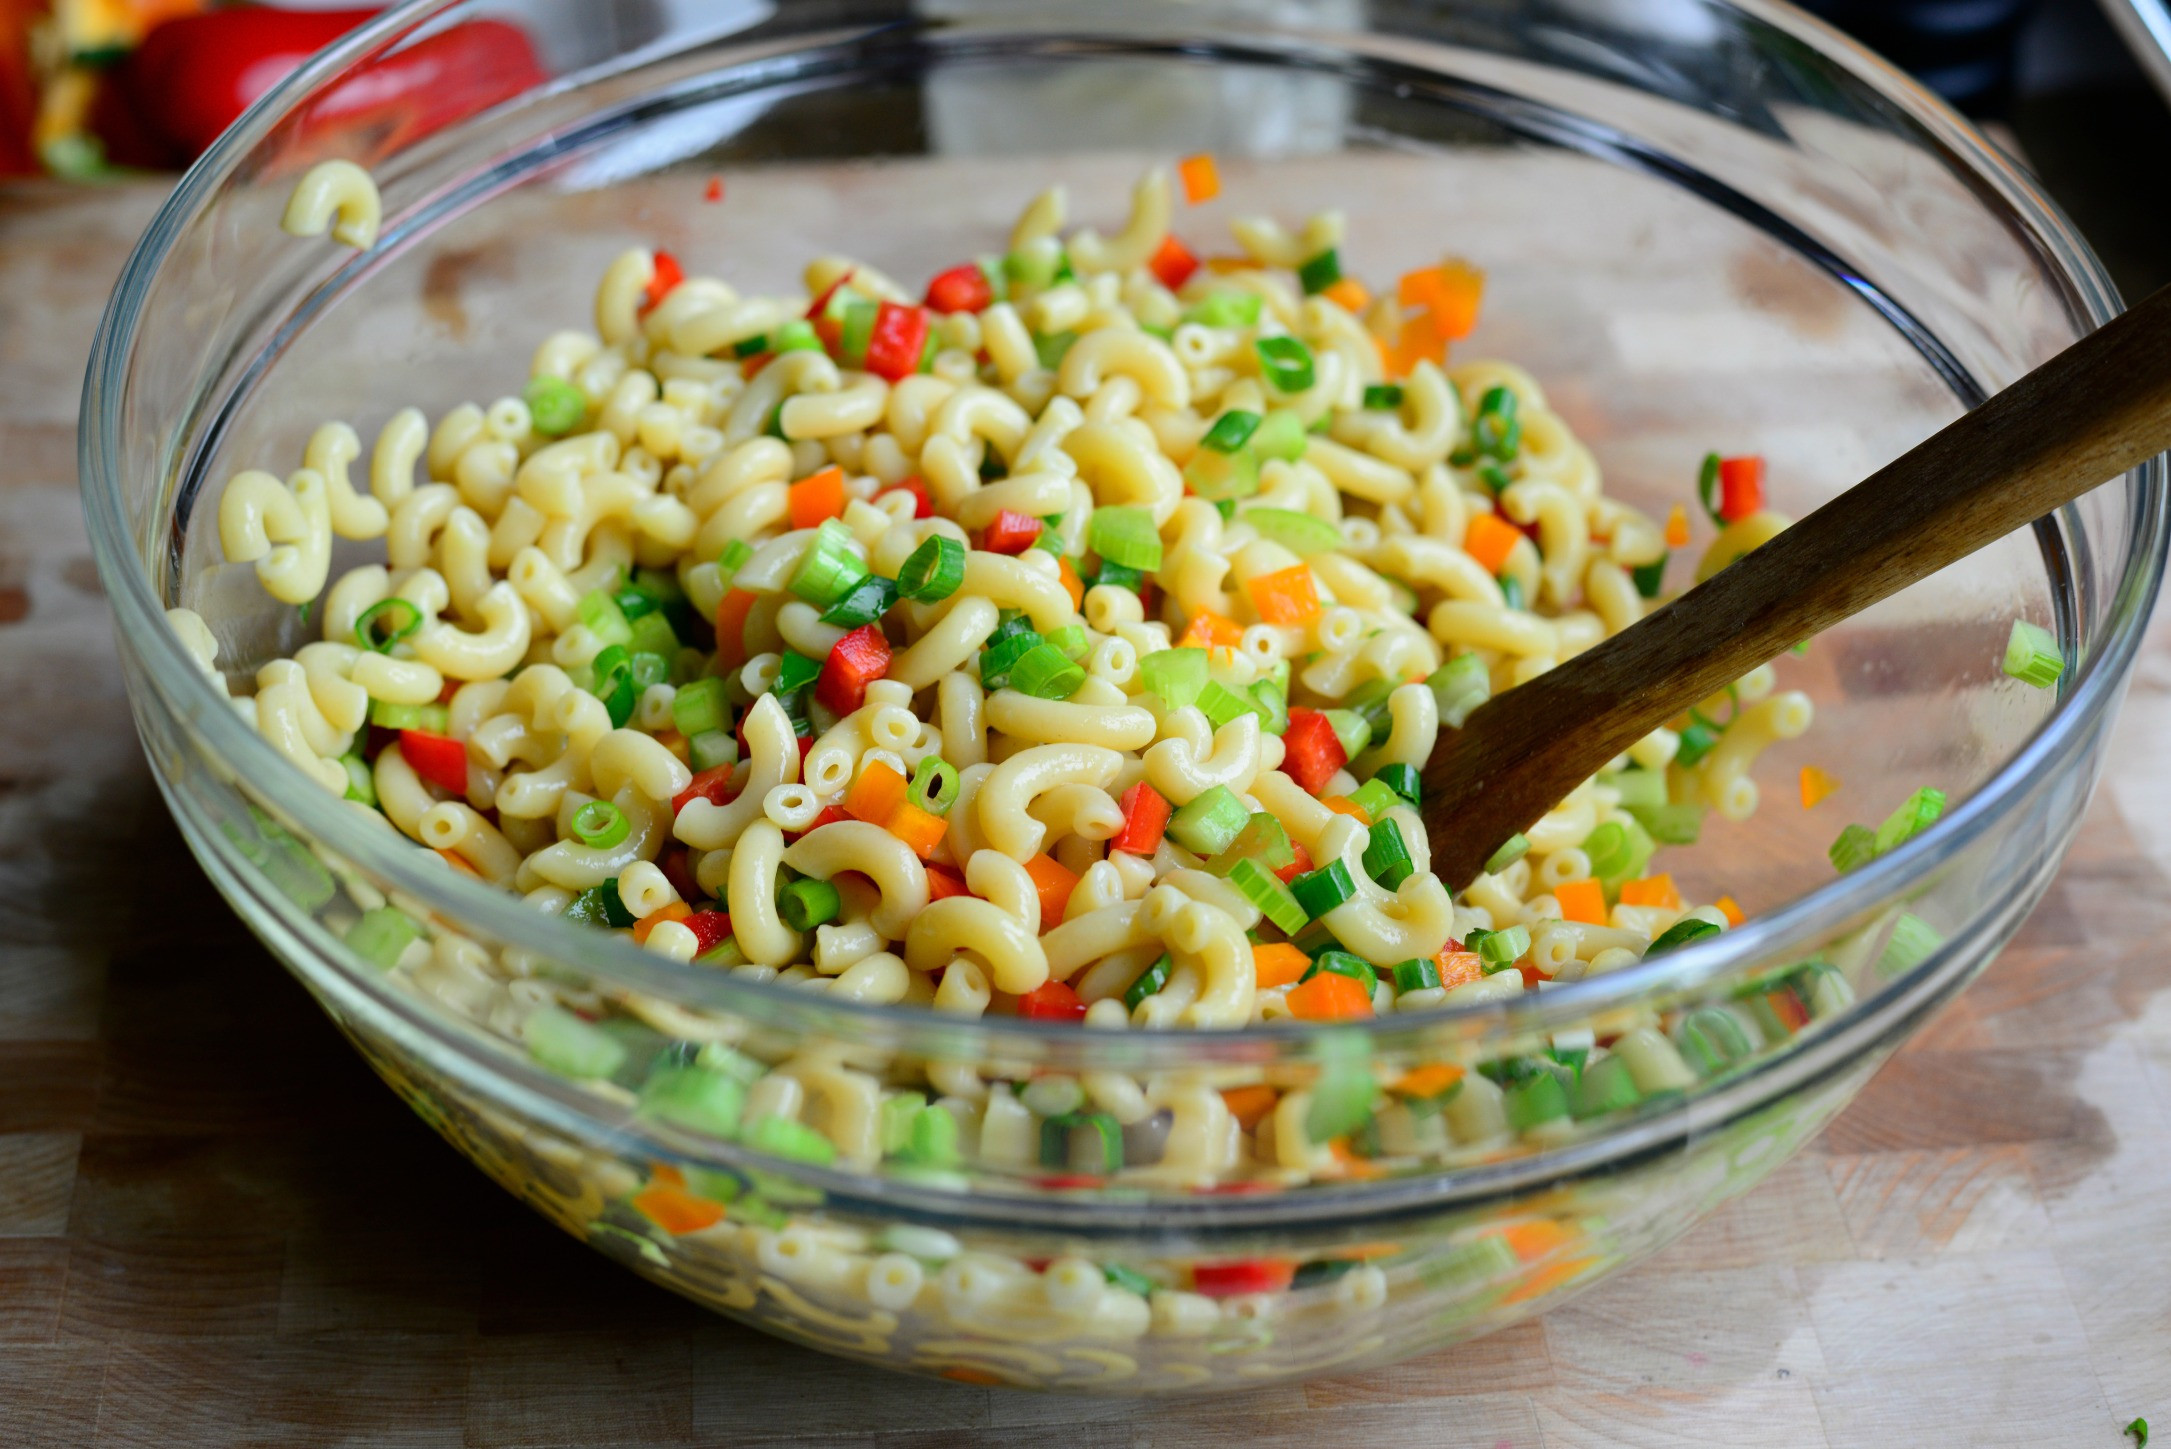 Homemade Macaroni Salad  Simply Scratch Classic Macaroni Salad with Homemade